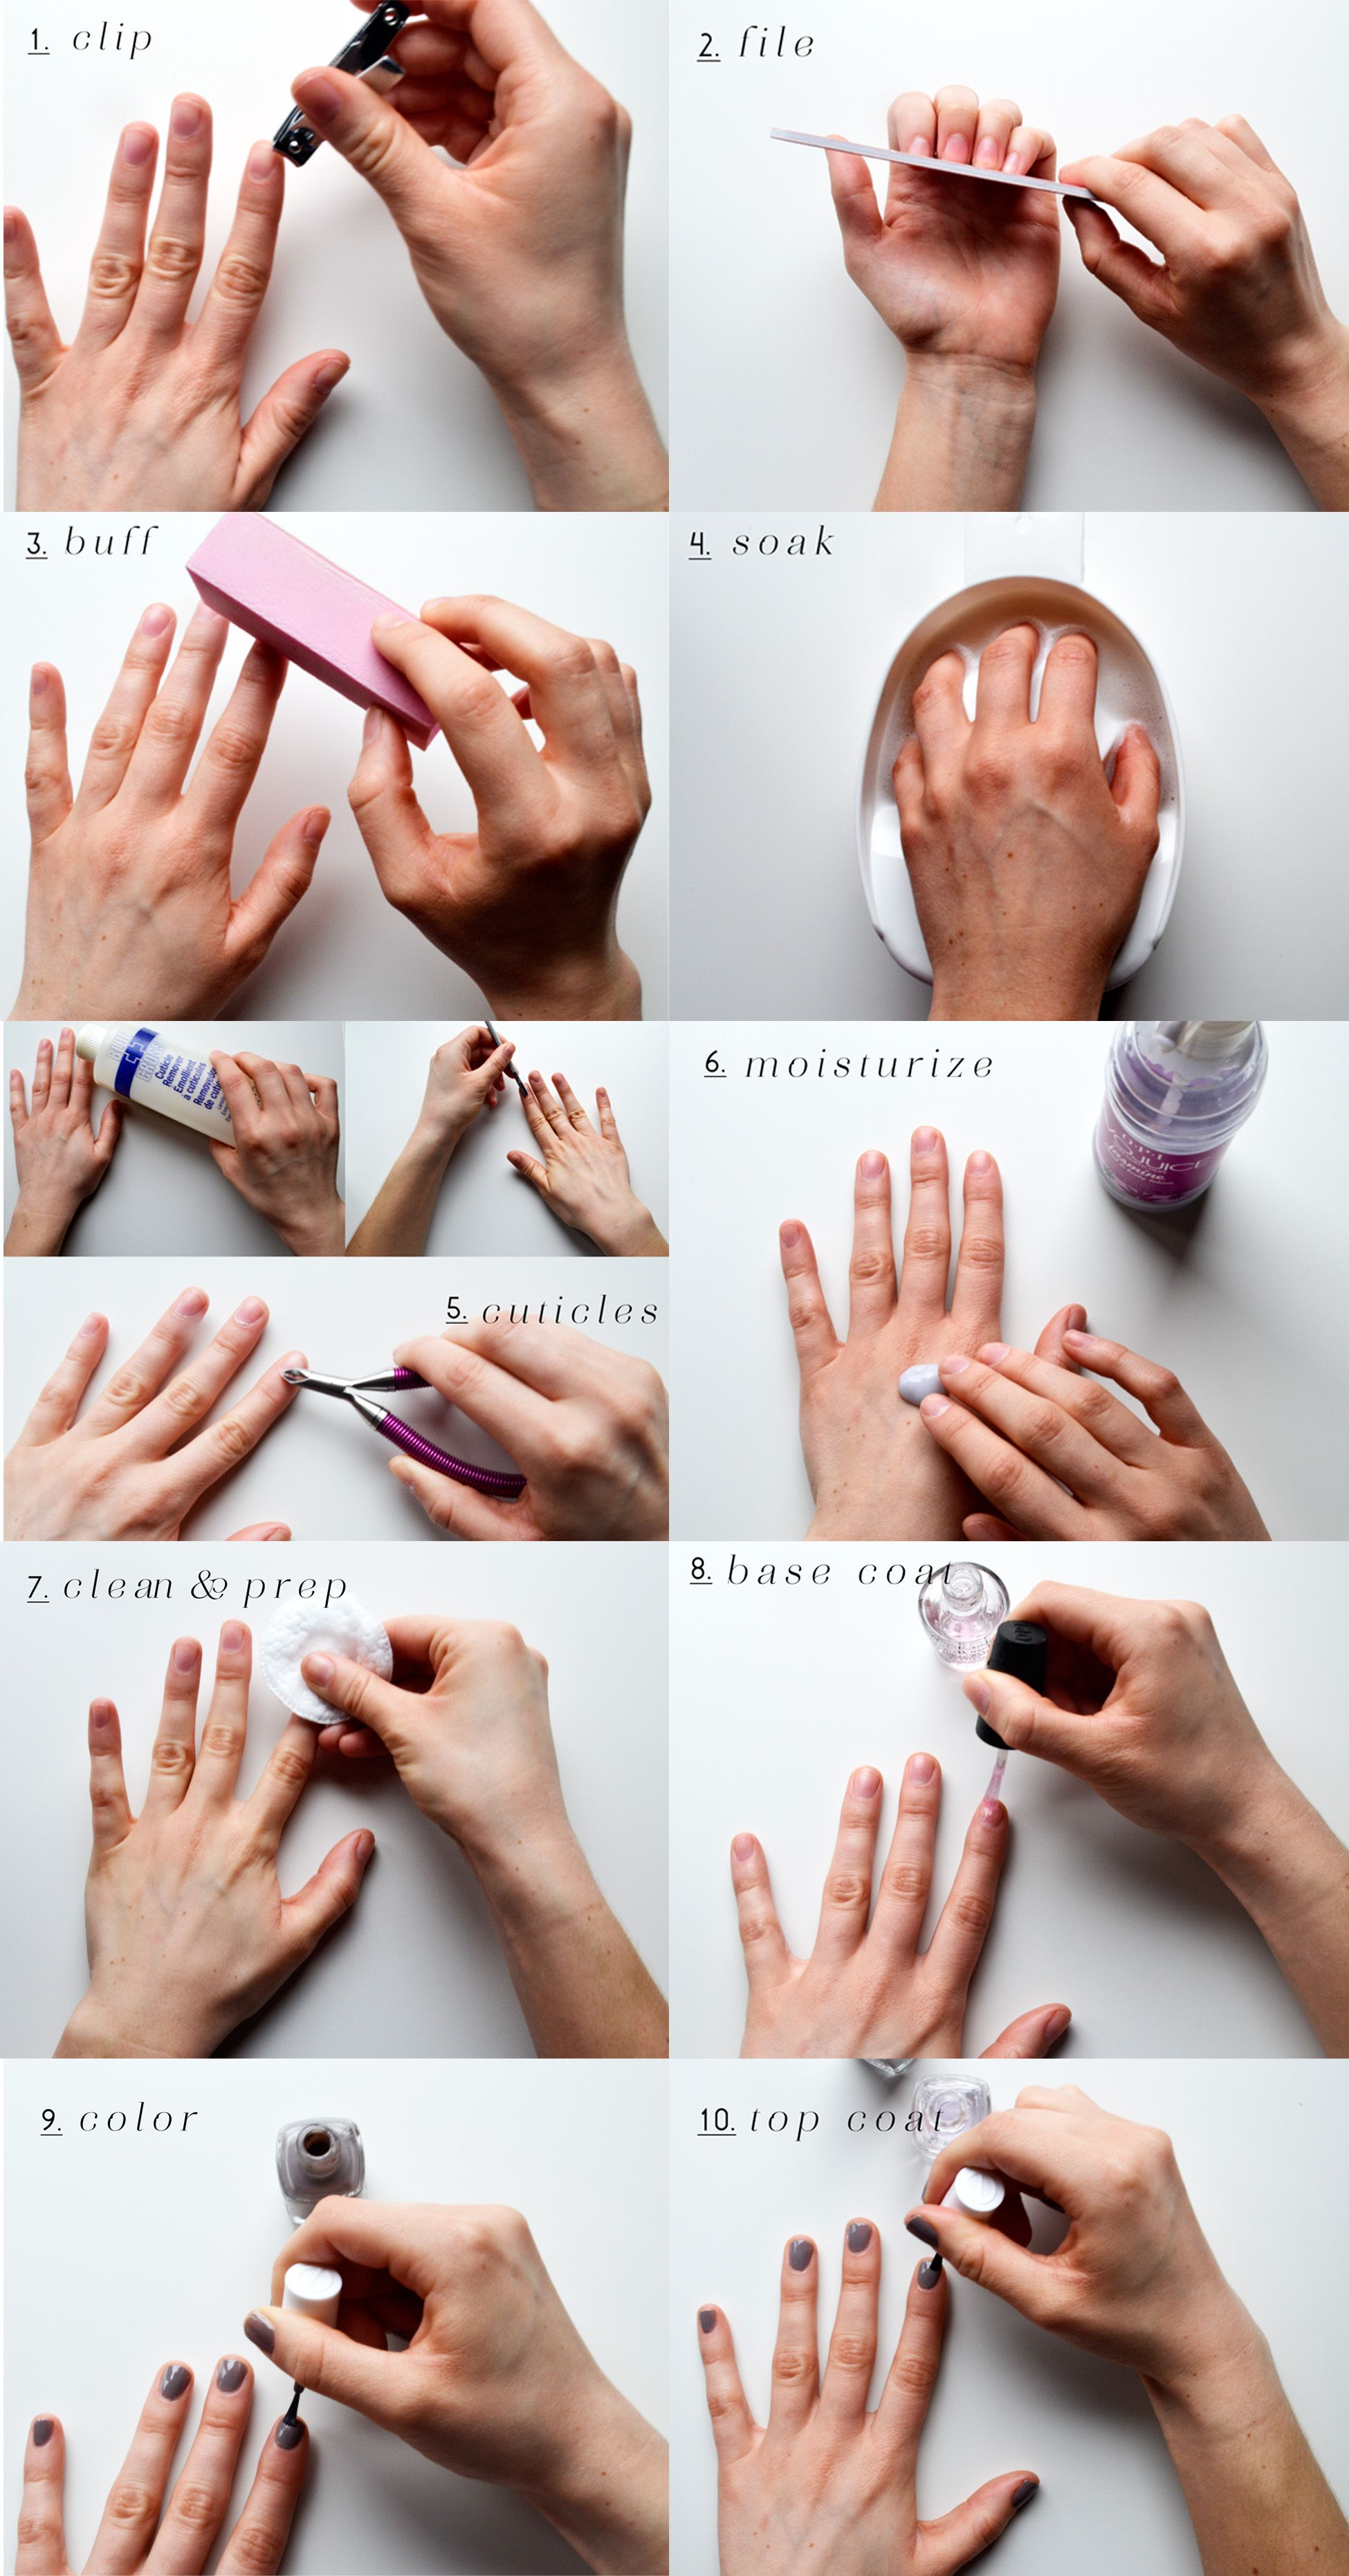 Steps To Follow For A Professional Salon Manicure Diy Pedicure Diy Manicure Manicure And Pedicure